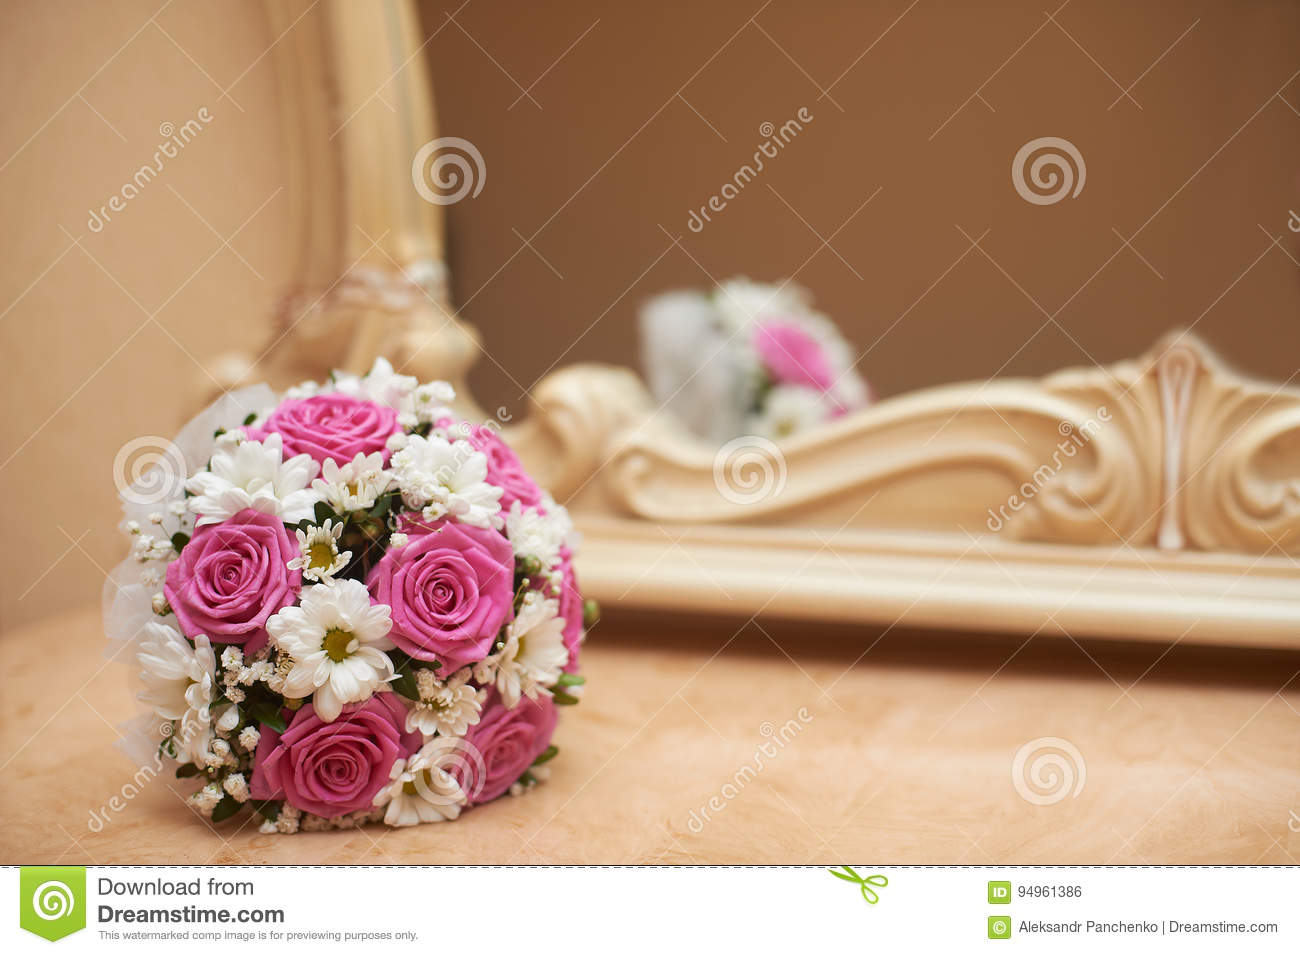 Wedding Bouquet Of Pink Roses And White Daisies Stock Photo Image